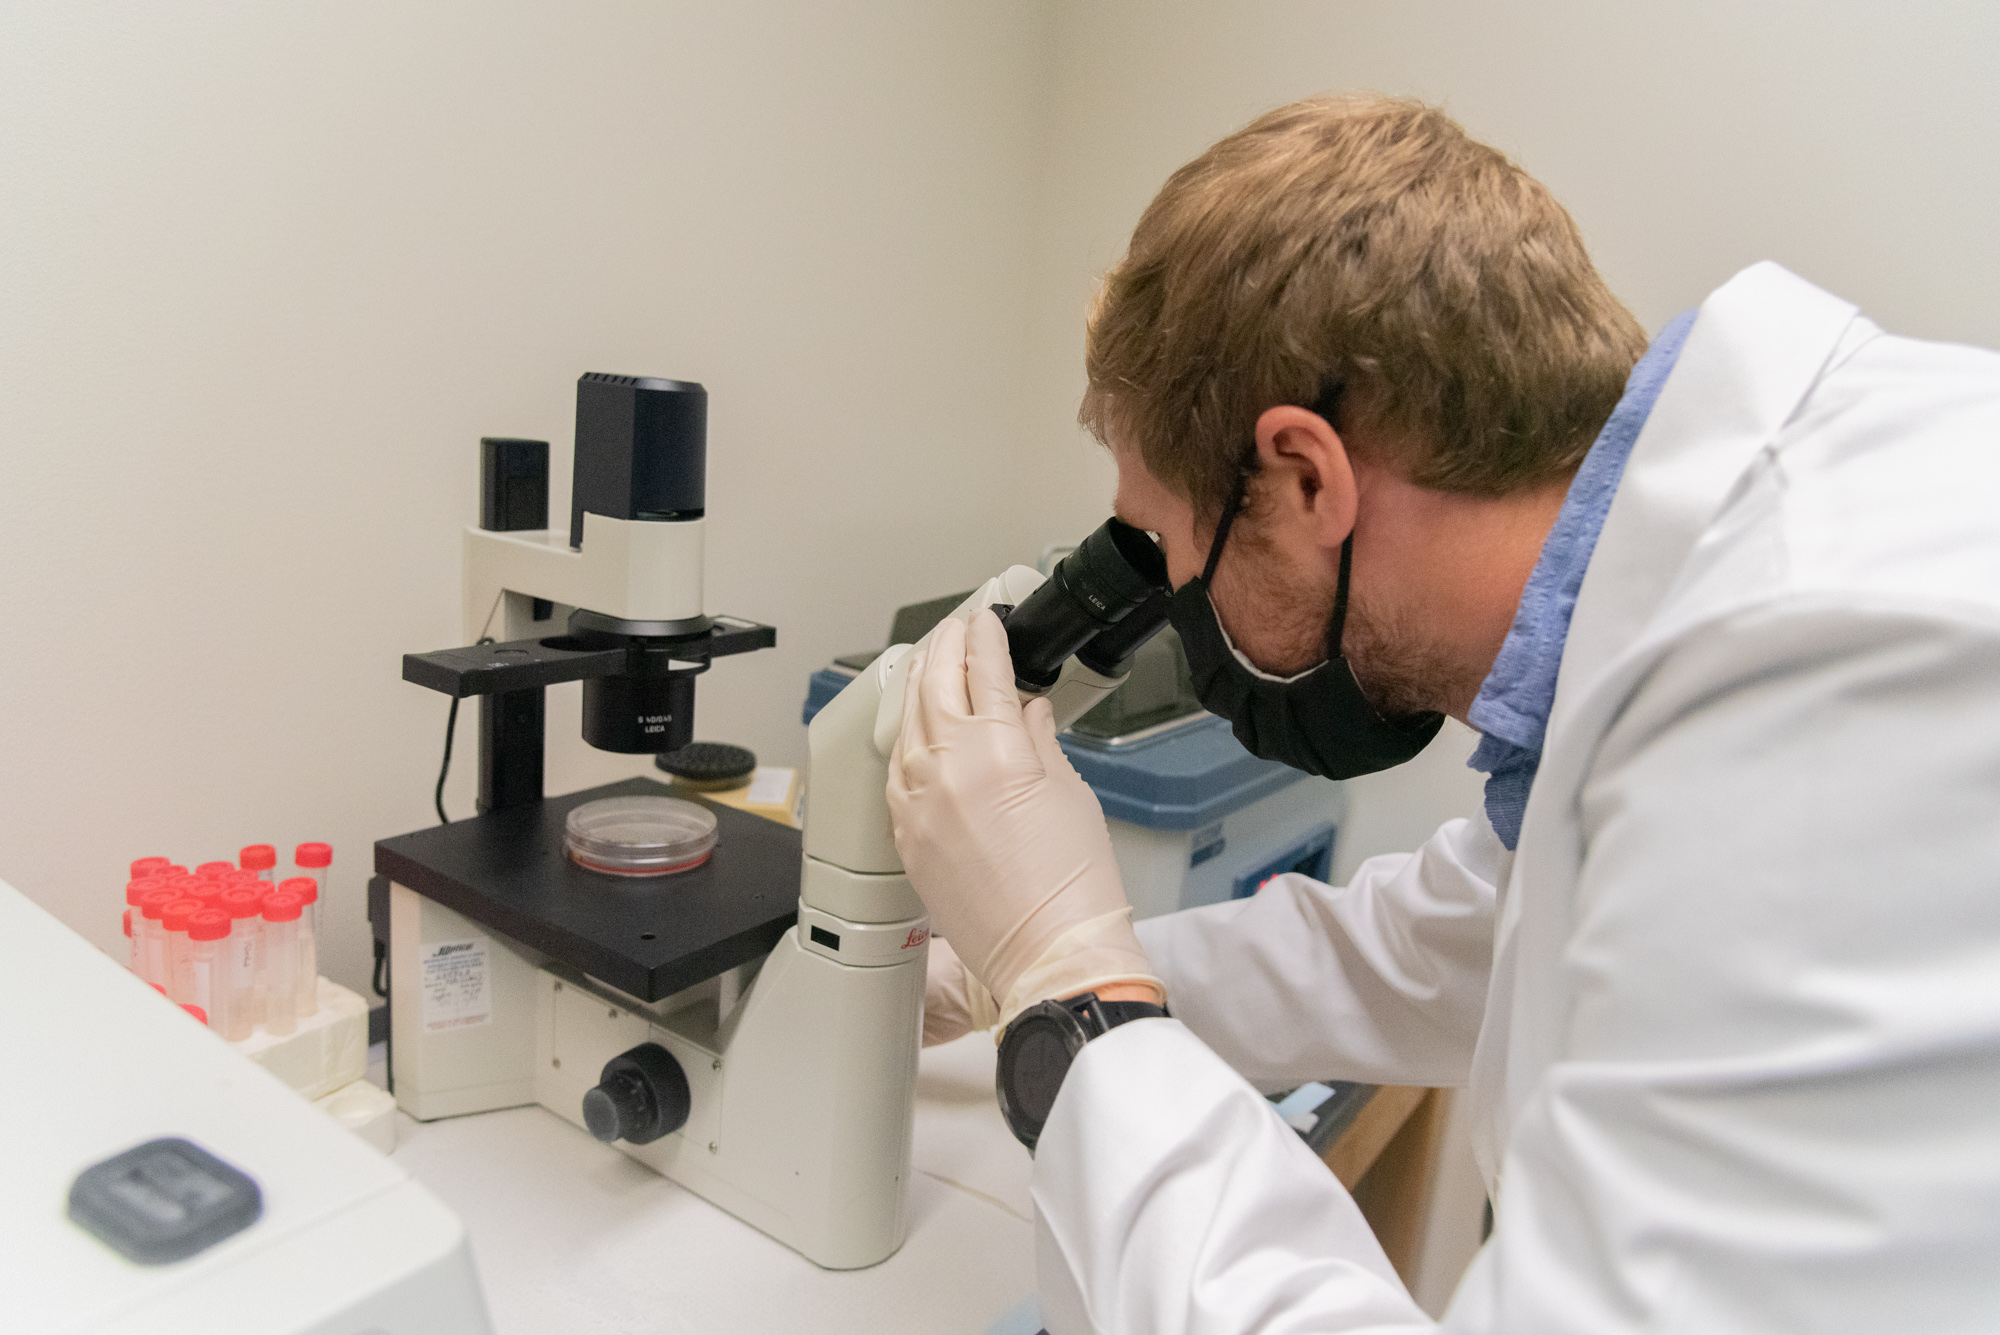 doctor Kidd looking under a microscope